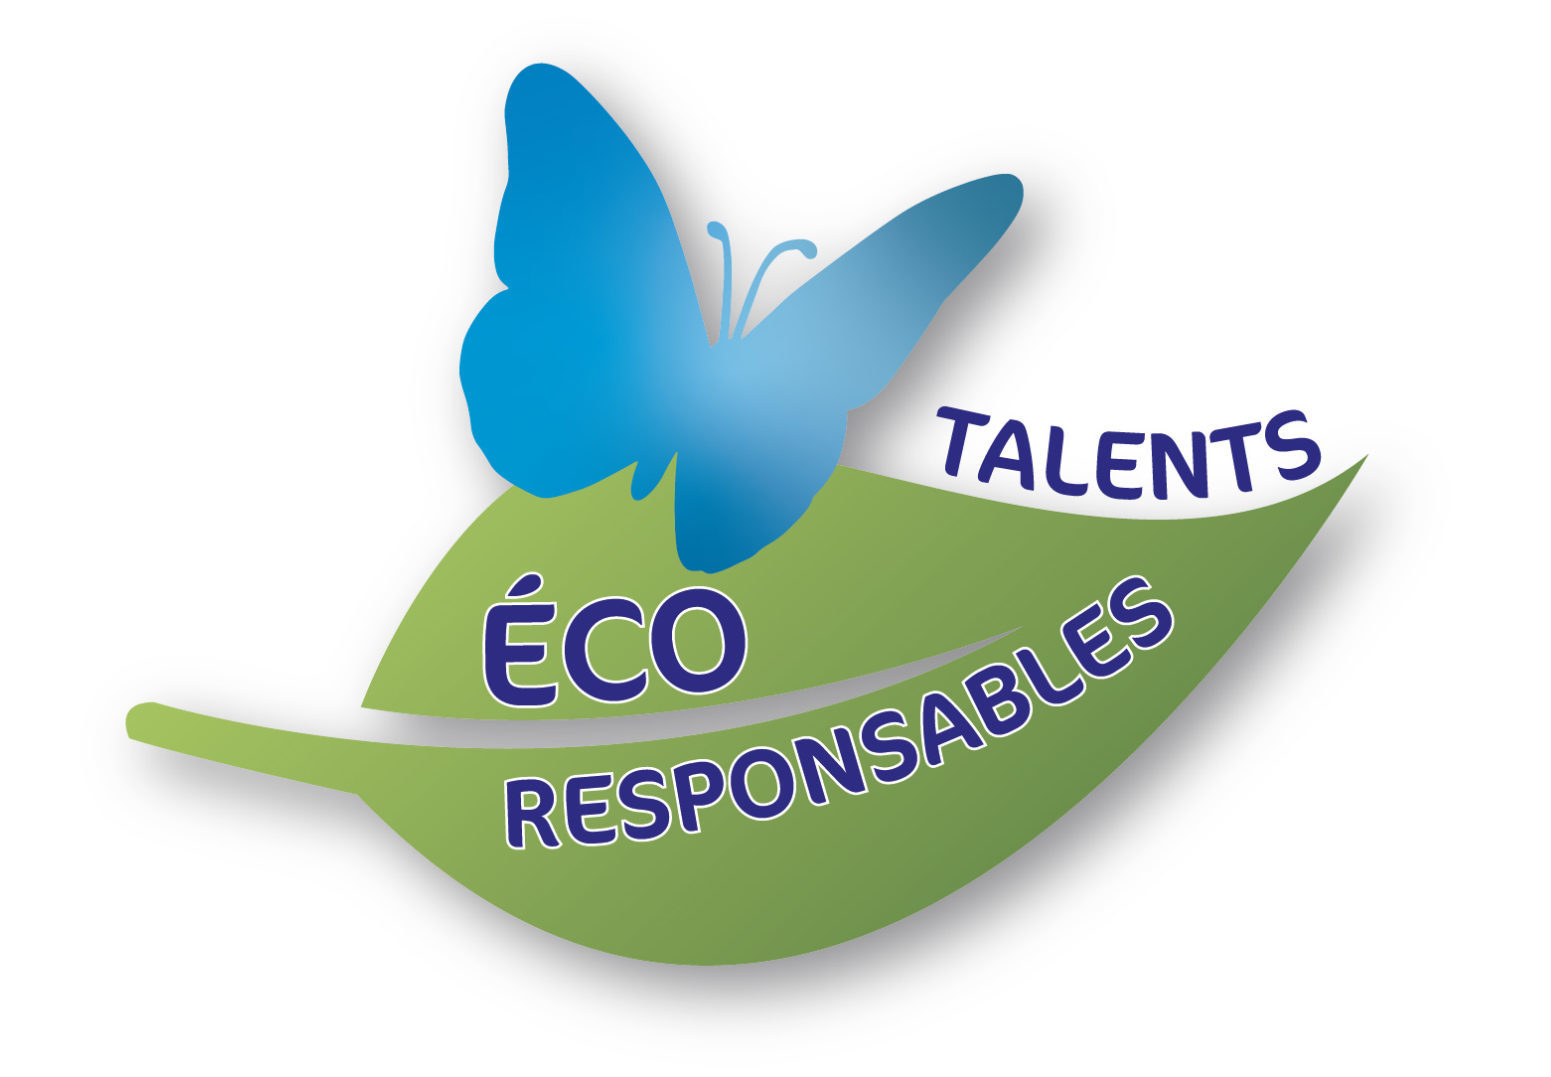 Talents Eco Responsables